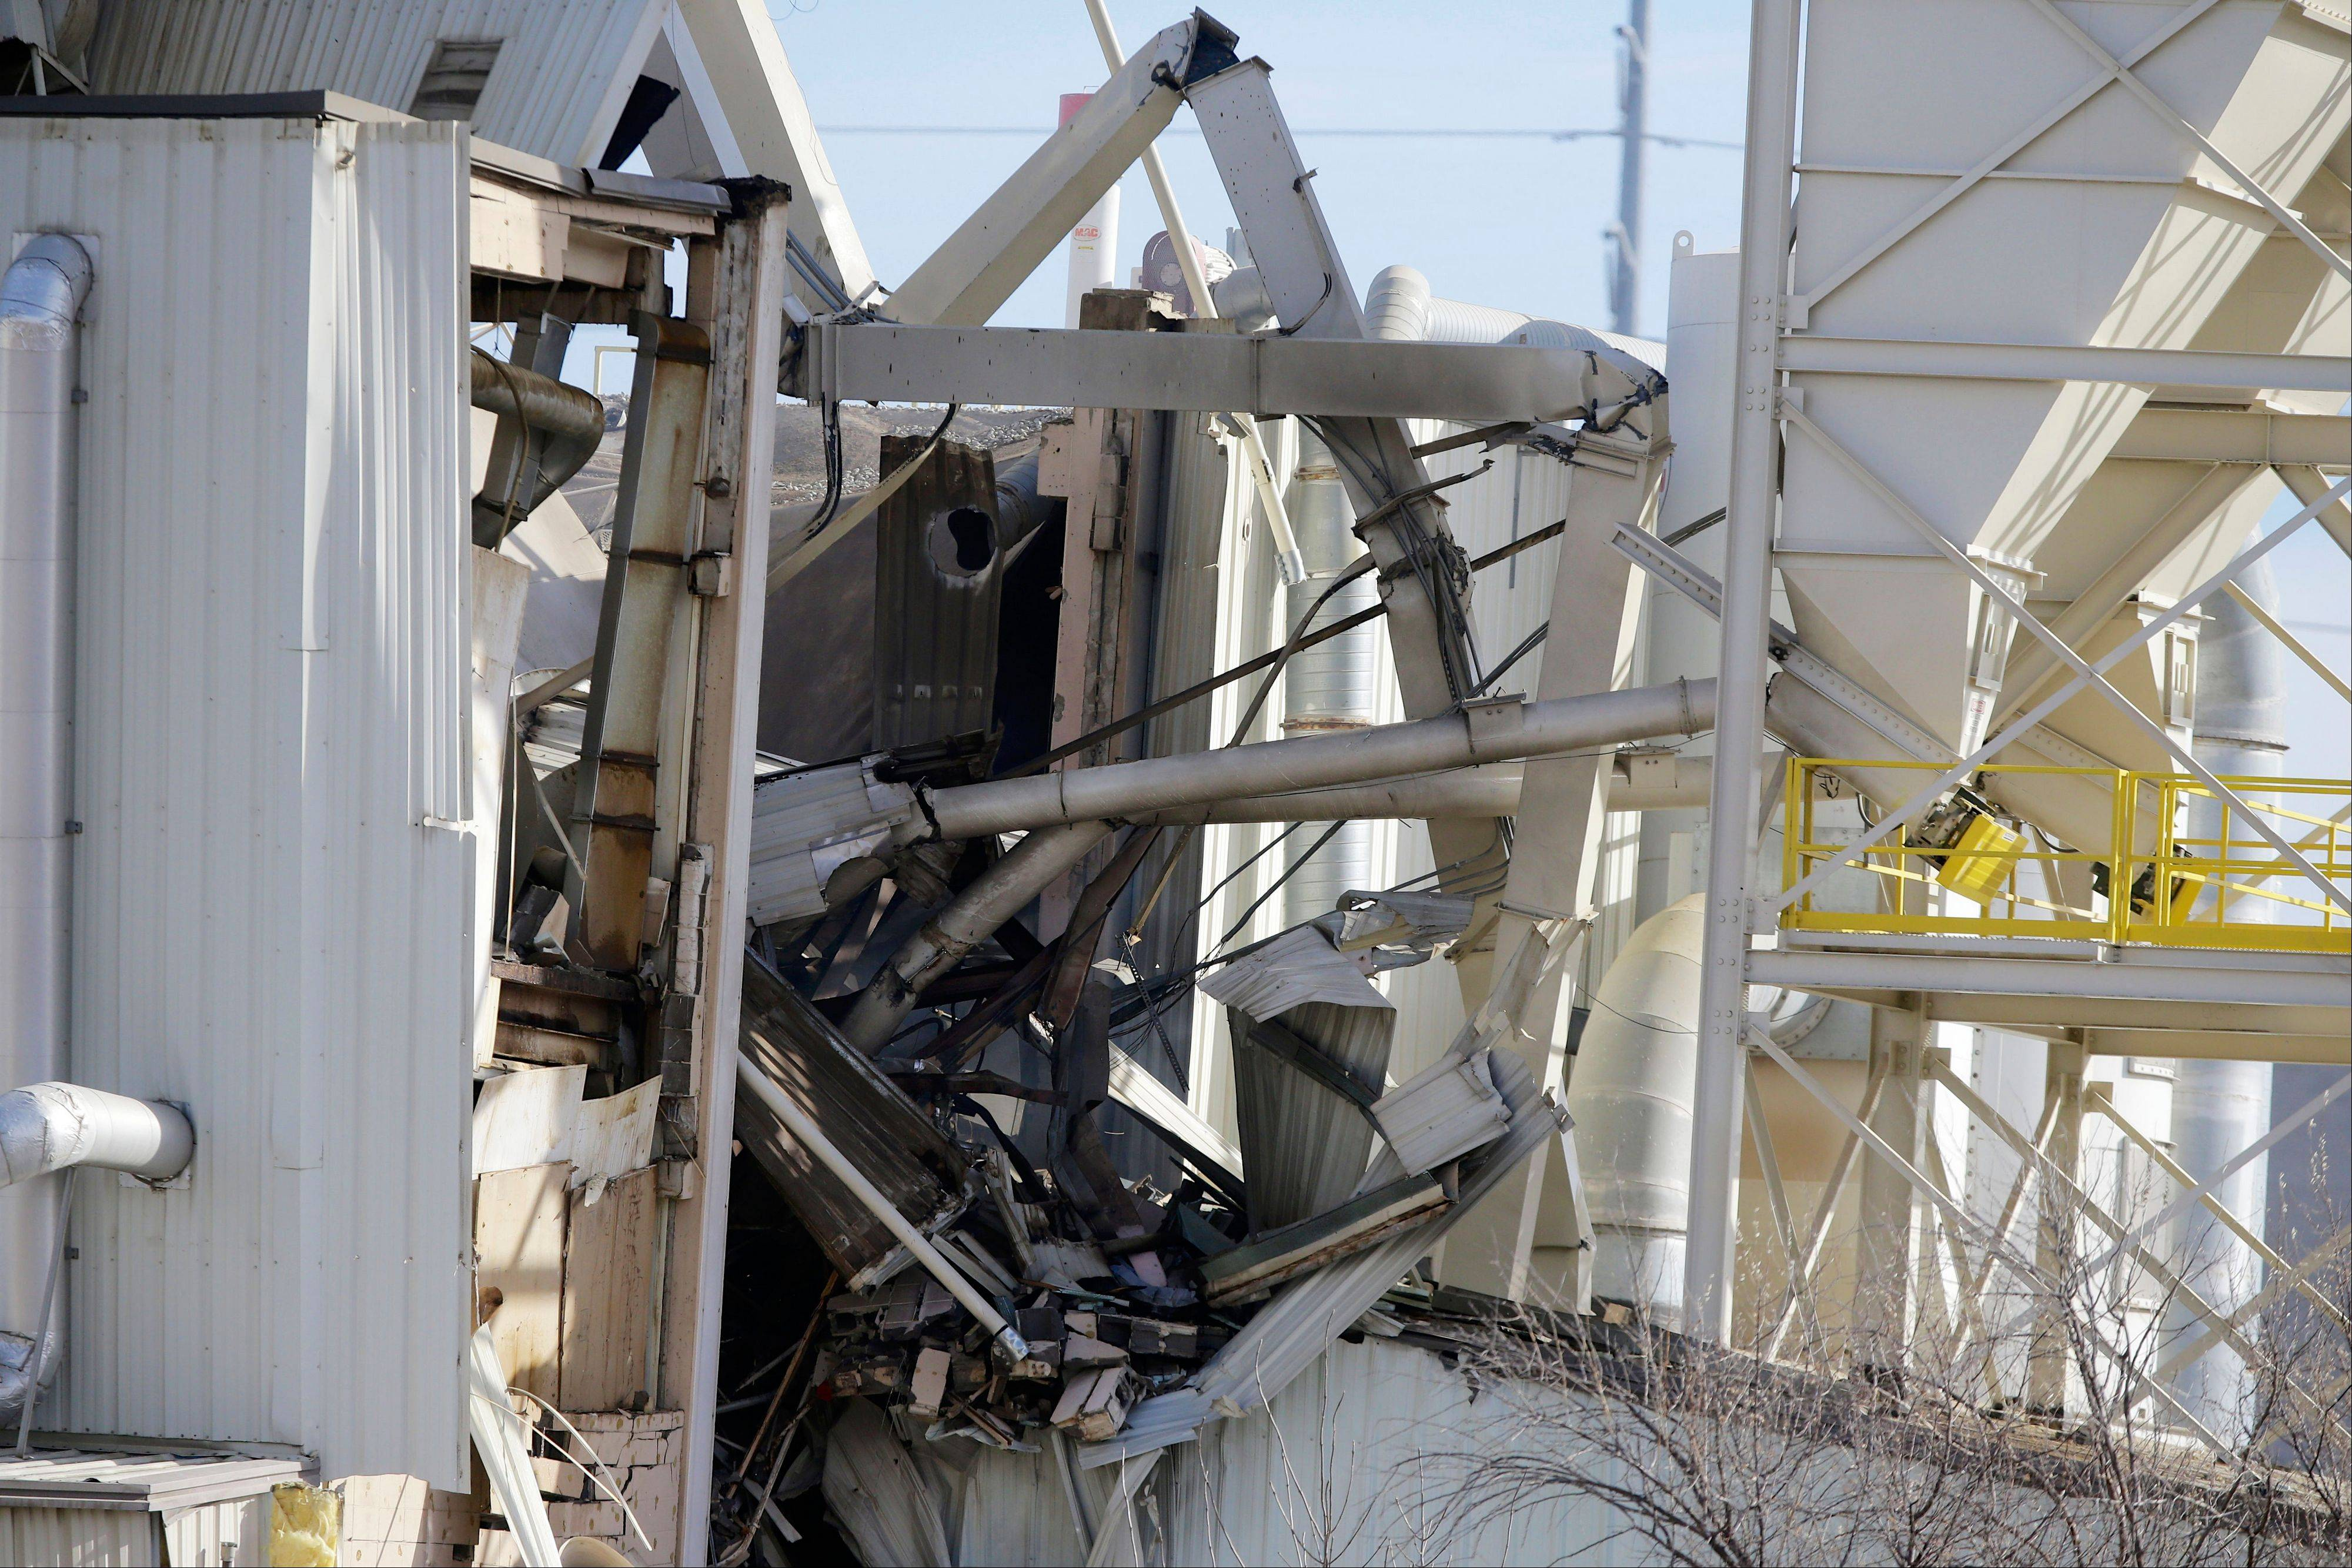 The International Nutrition plant is in wreckage in Omaha, Neb., where a fire and explosion took place Monday, Jan. 20, 2014. Two workers were killed and 10 were hospitalized with significant injuries.